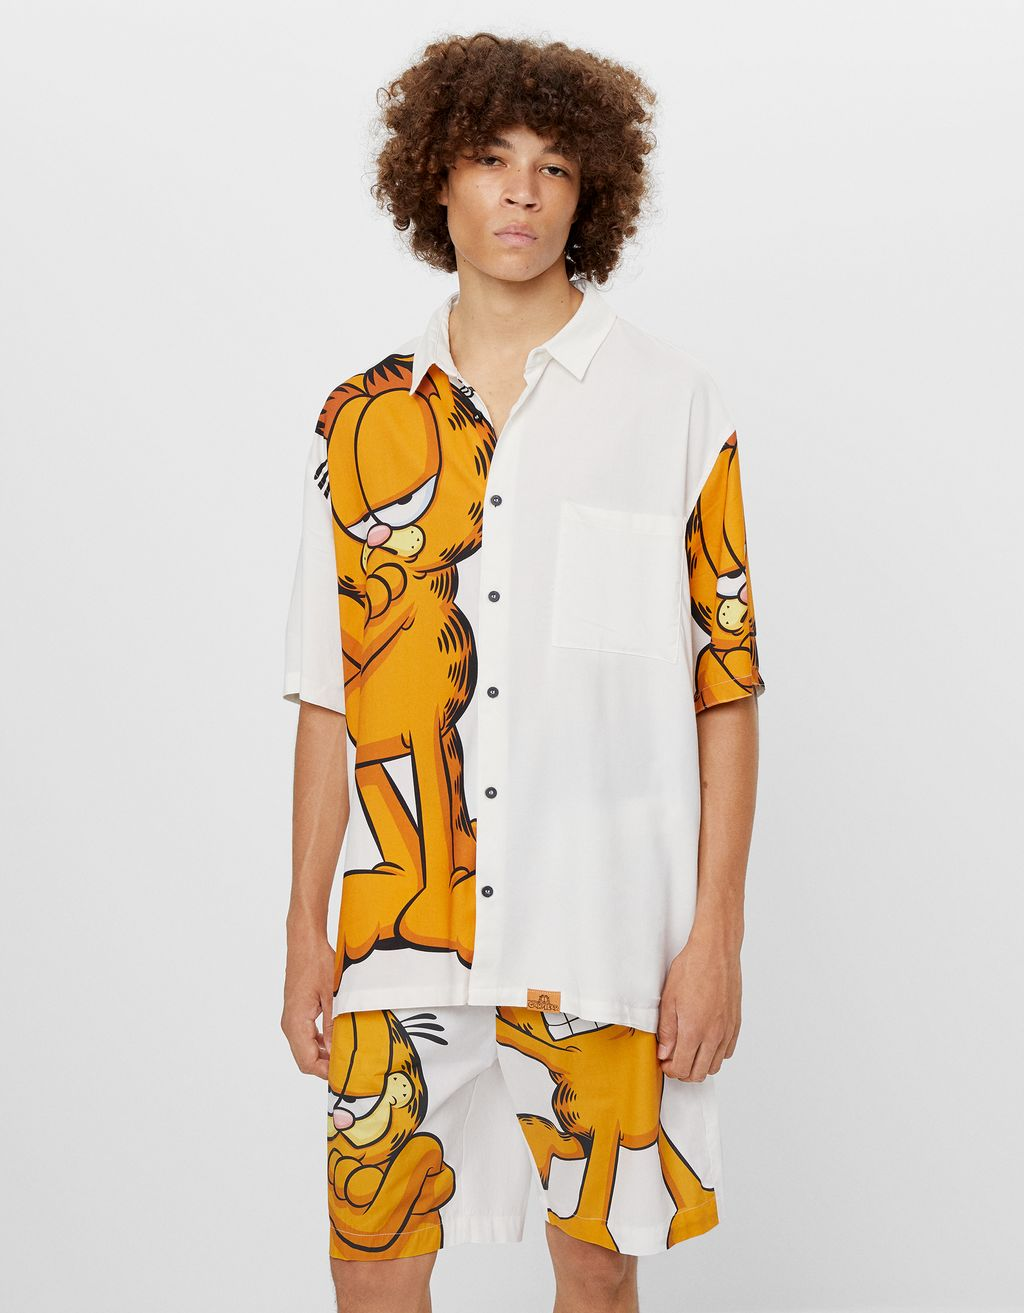 Garfield shirt